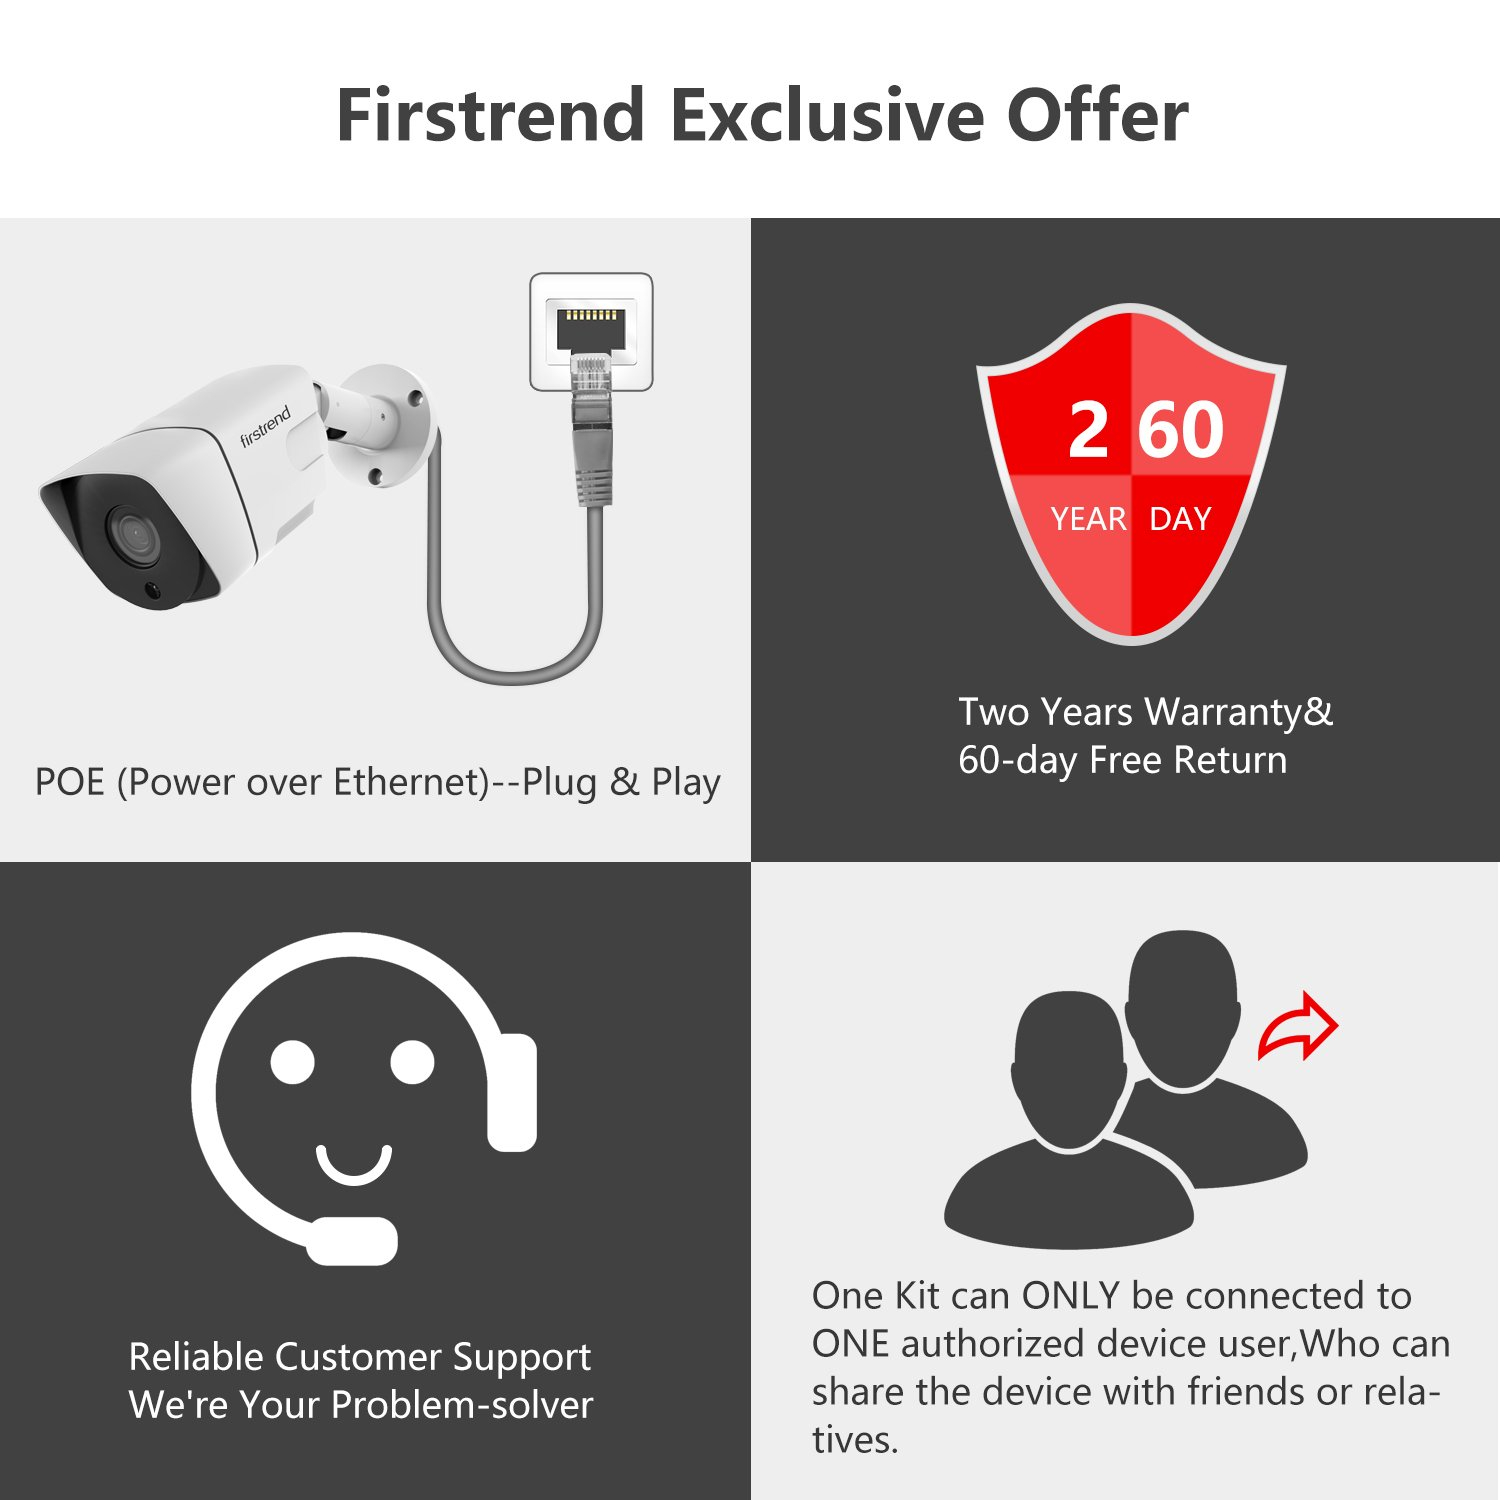 Amazon.com : Firstrend 4CH POE Security Camera System with 4X 1080P HD Security Camera, Plug and Play Home Camera Security System with Free APP, ...